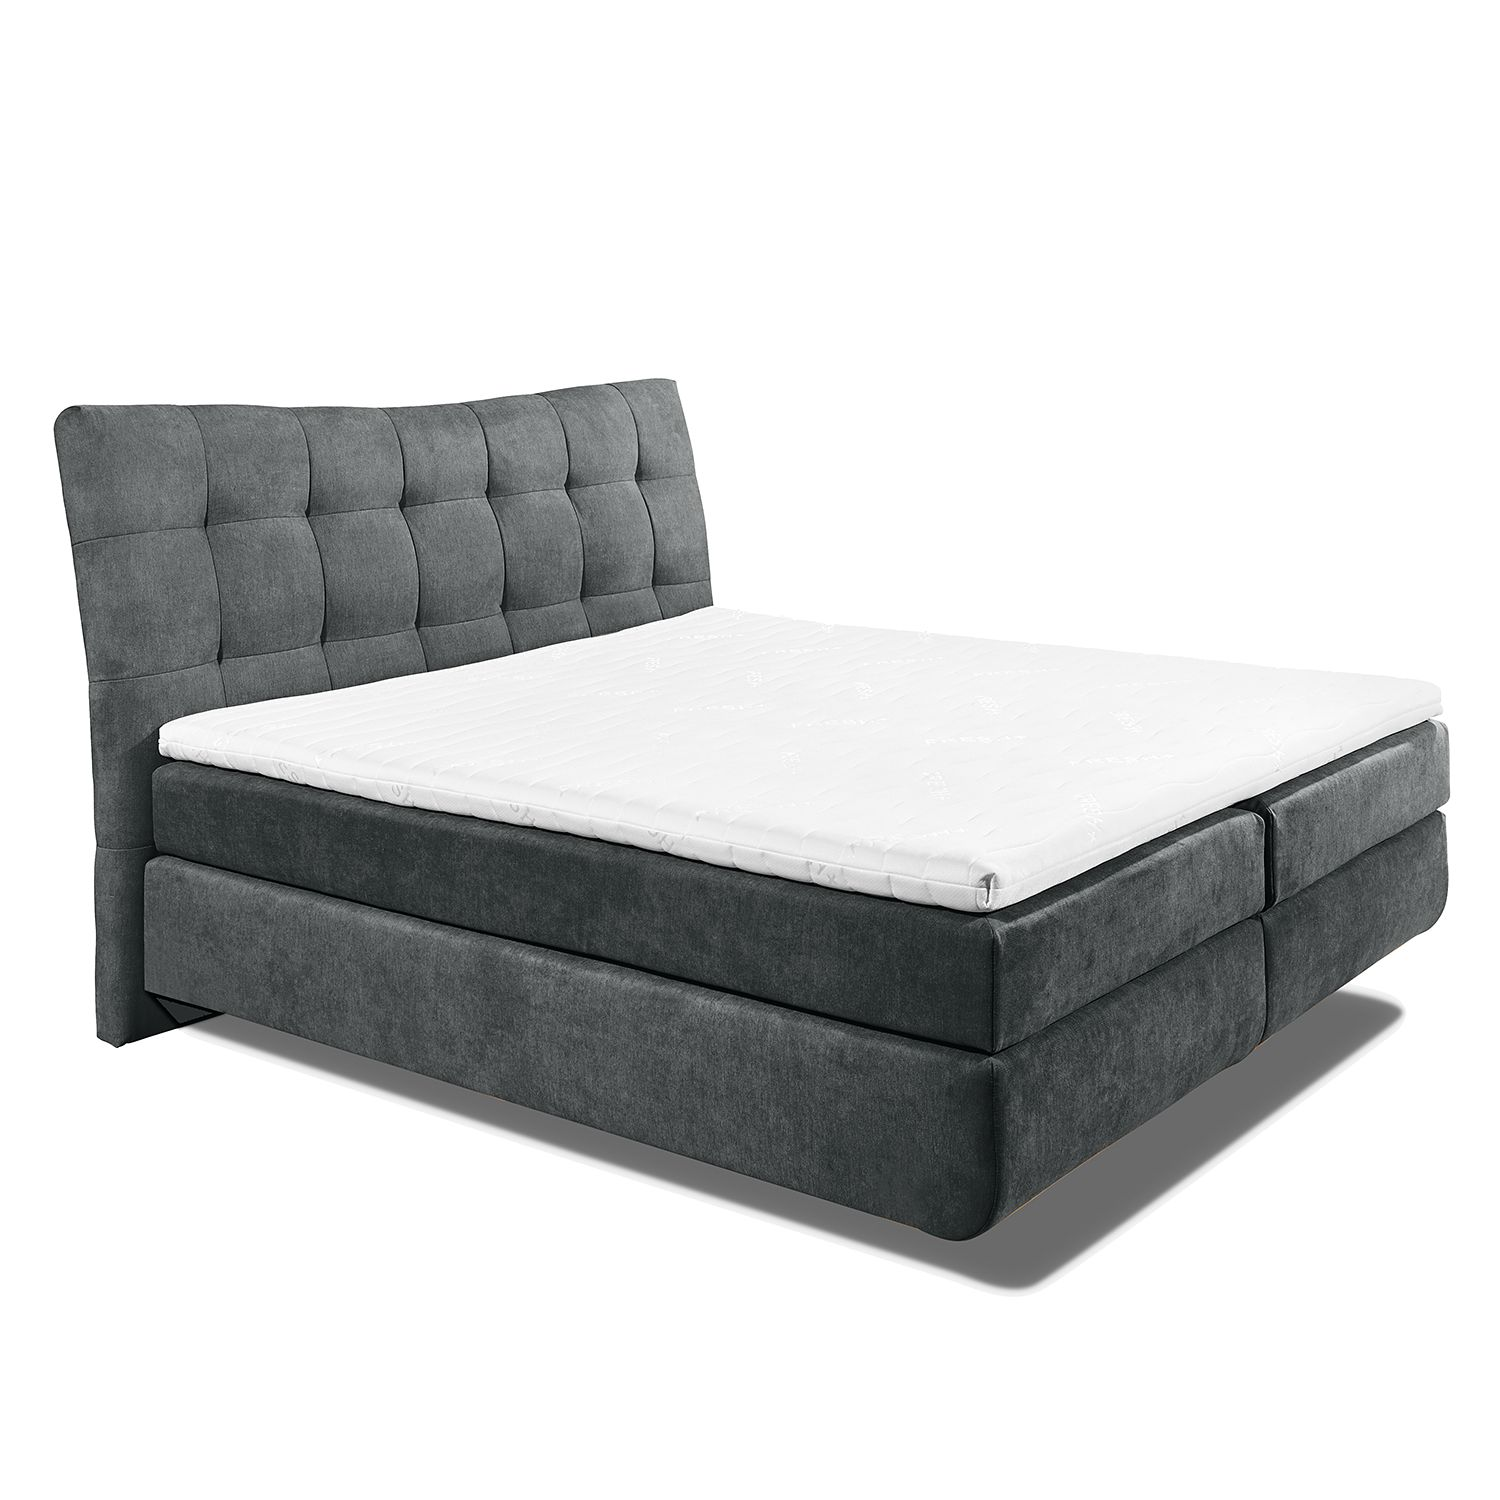 home24 Boxspringbett Maum (inkl. Topper)